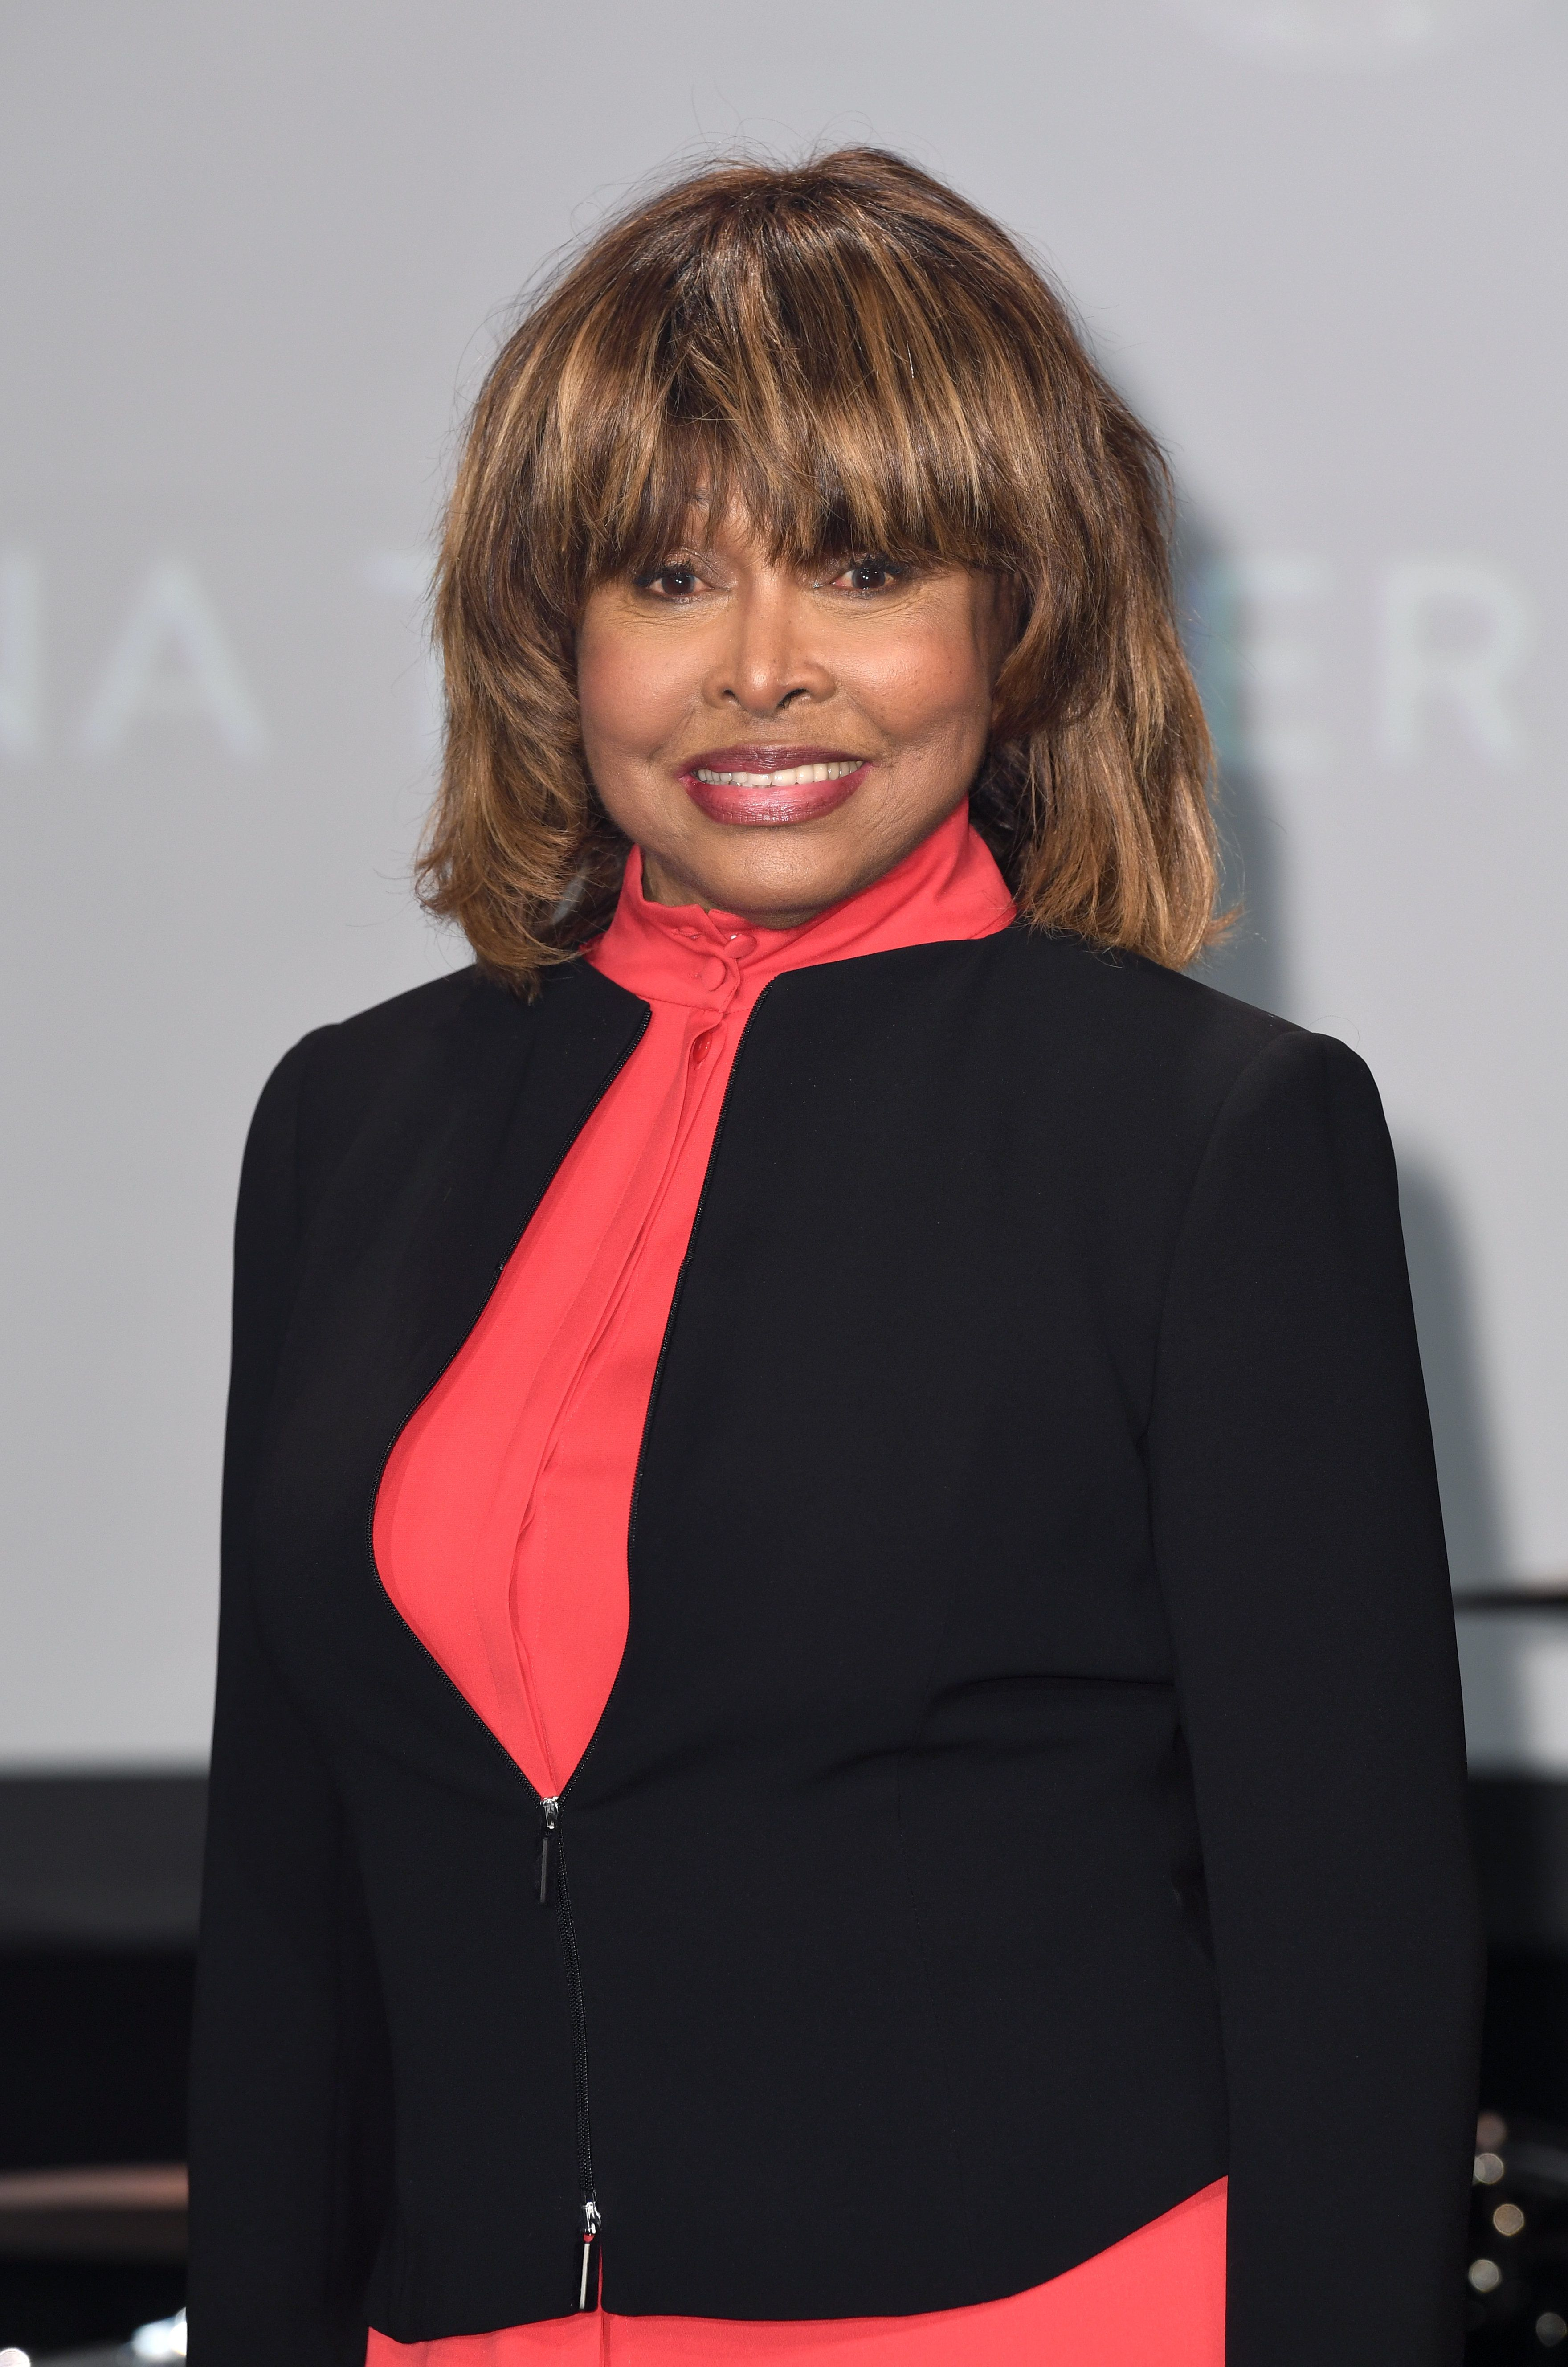 Tina Turner Makes Rare Public Appearance As She Launches West End Musical About Her Life